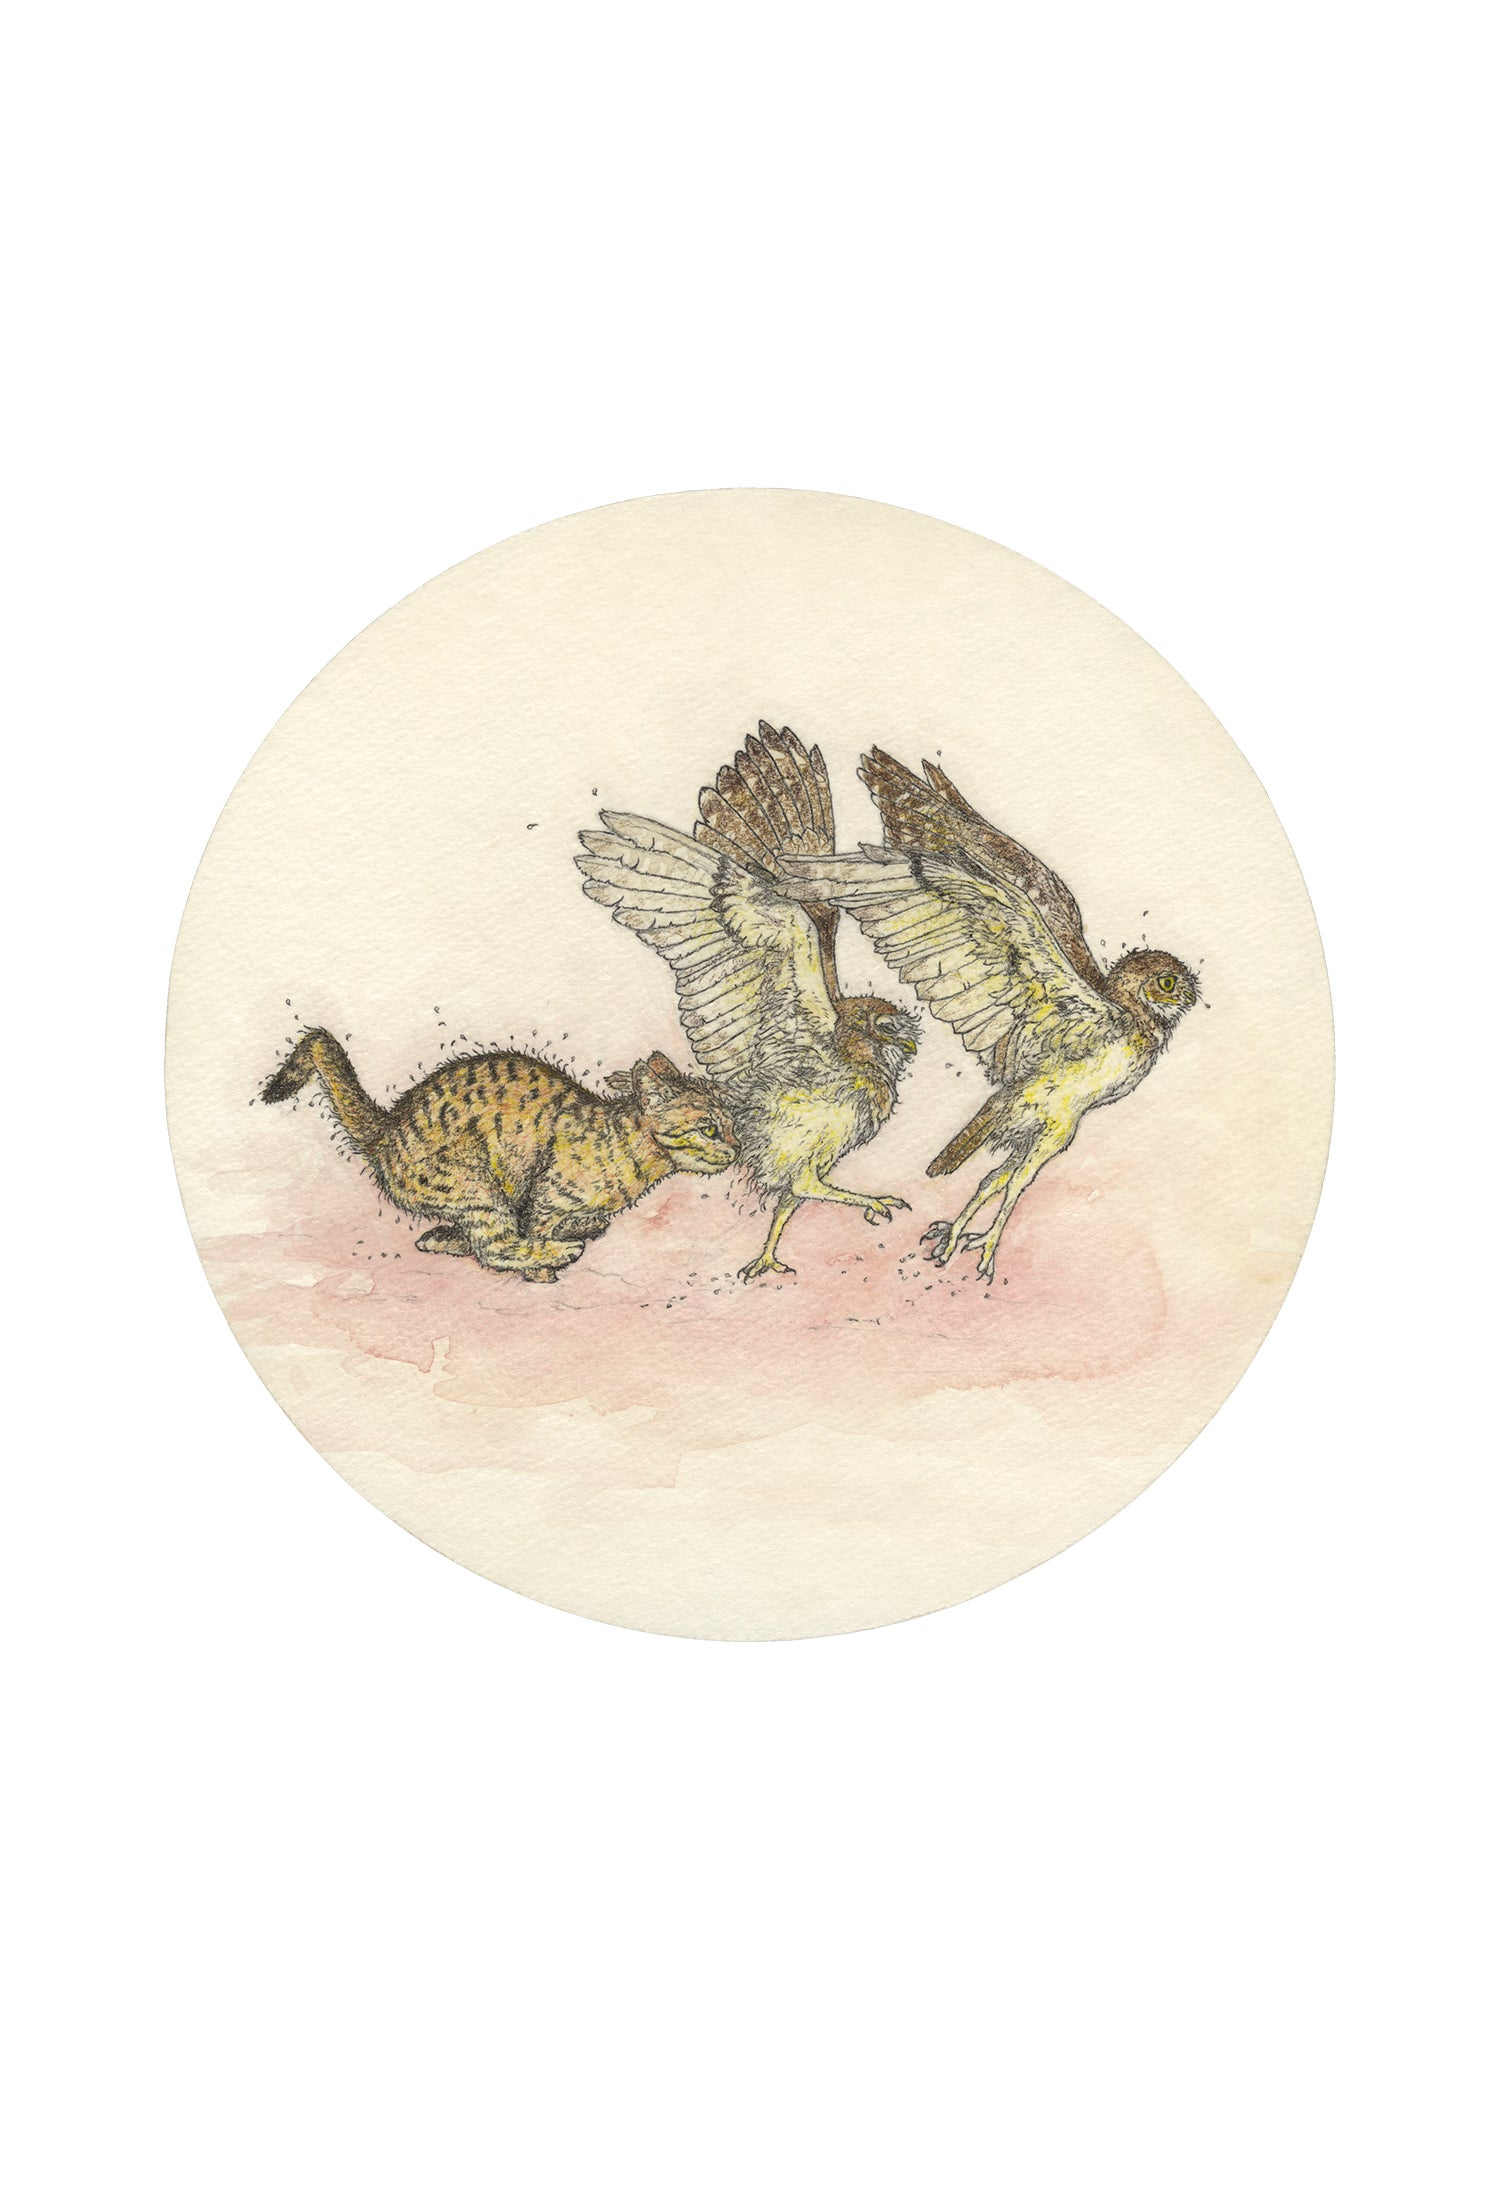 Image of Kitten Running with Owls giclee print